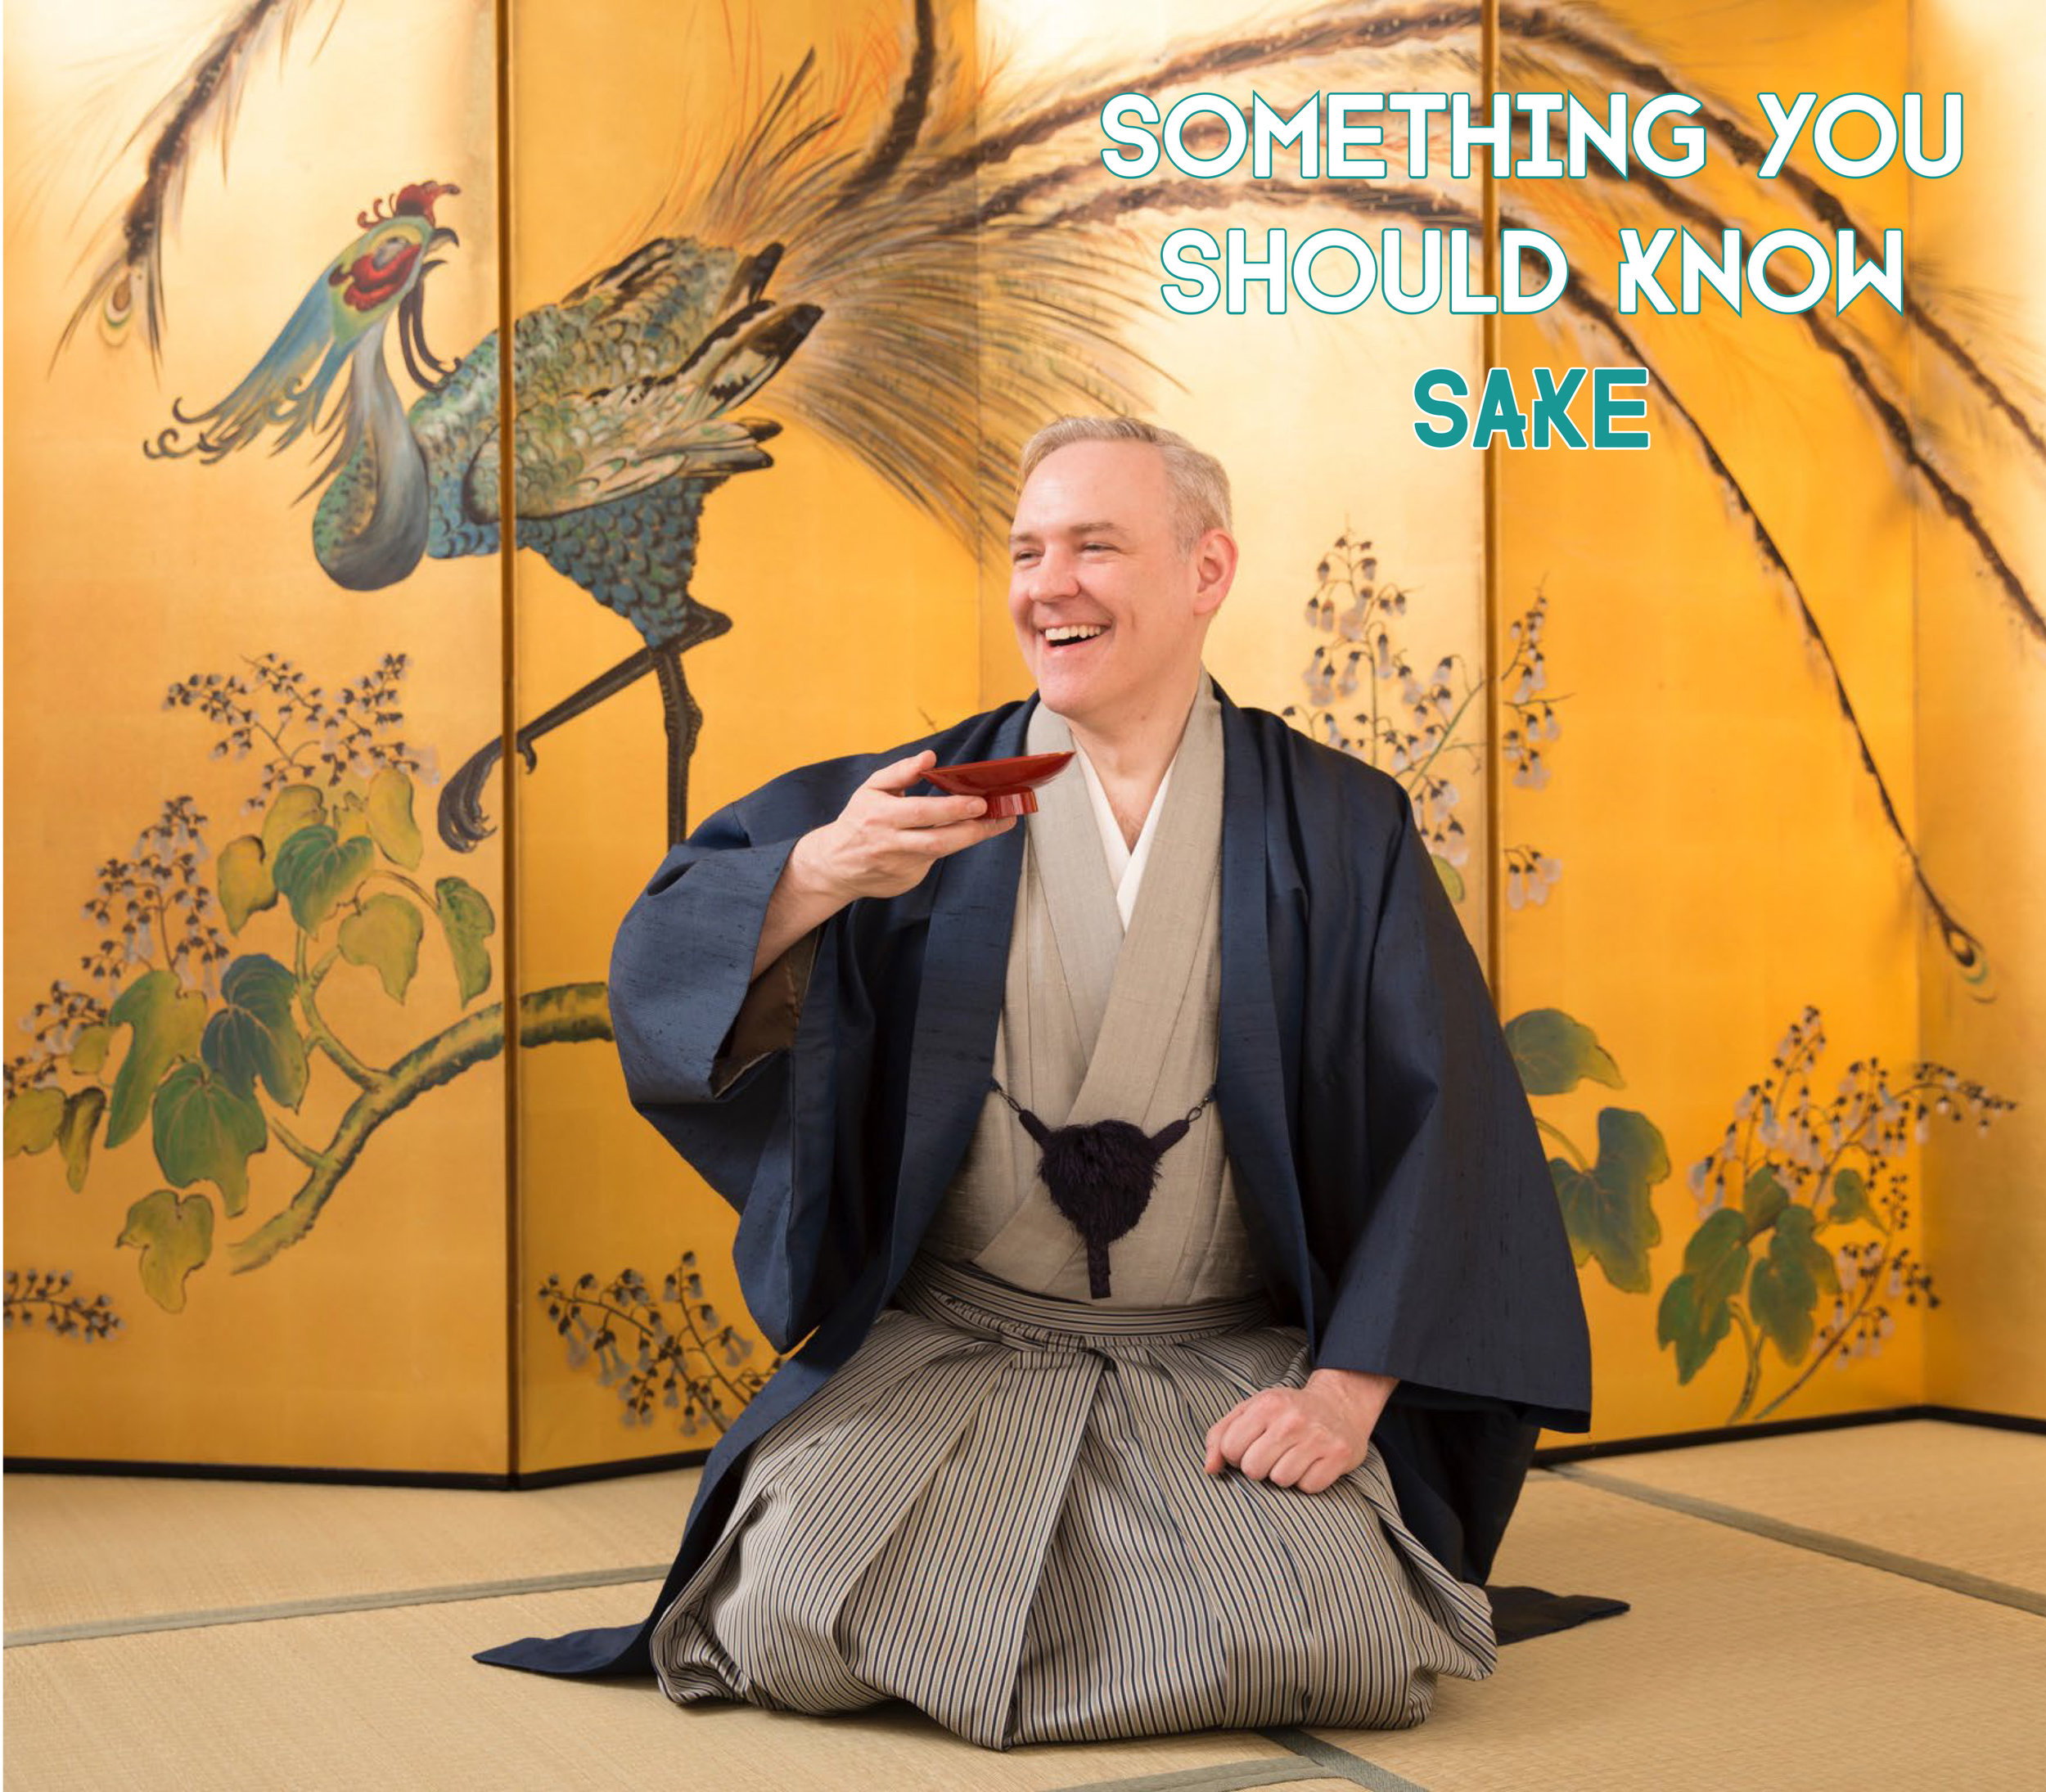 AM JAN SOMETHING YOU SHOULD KNOW SAKE-1.jpg